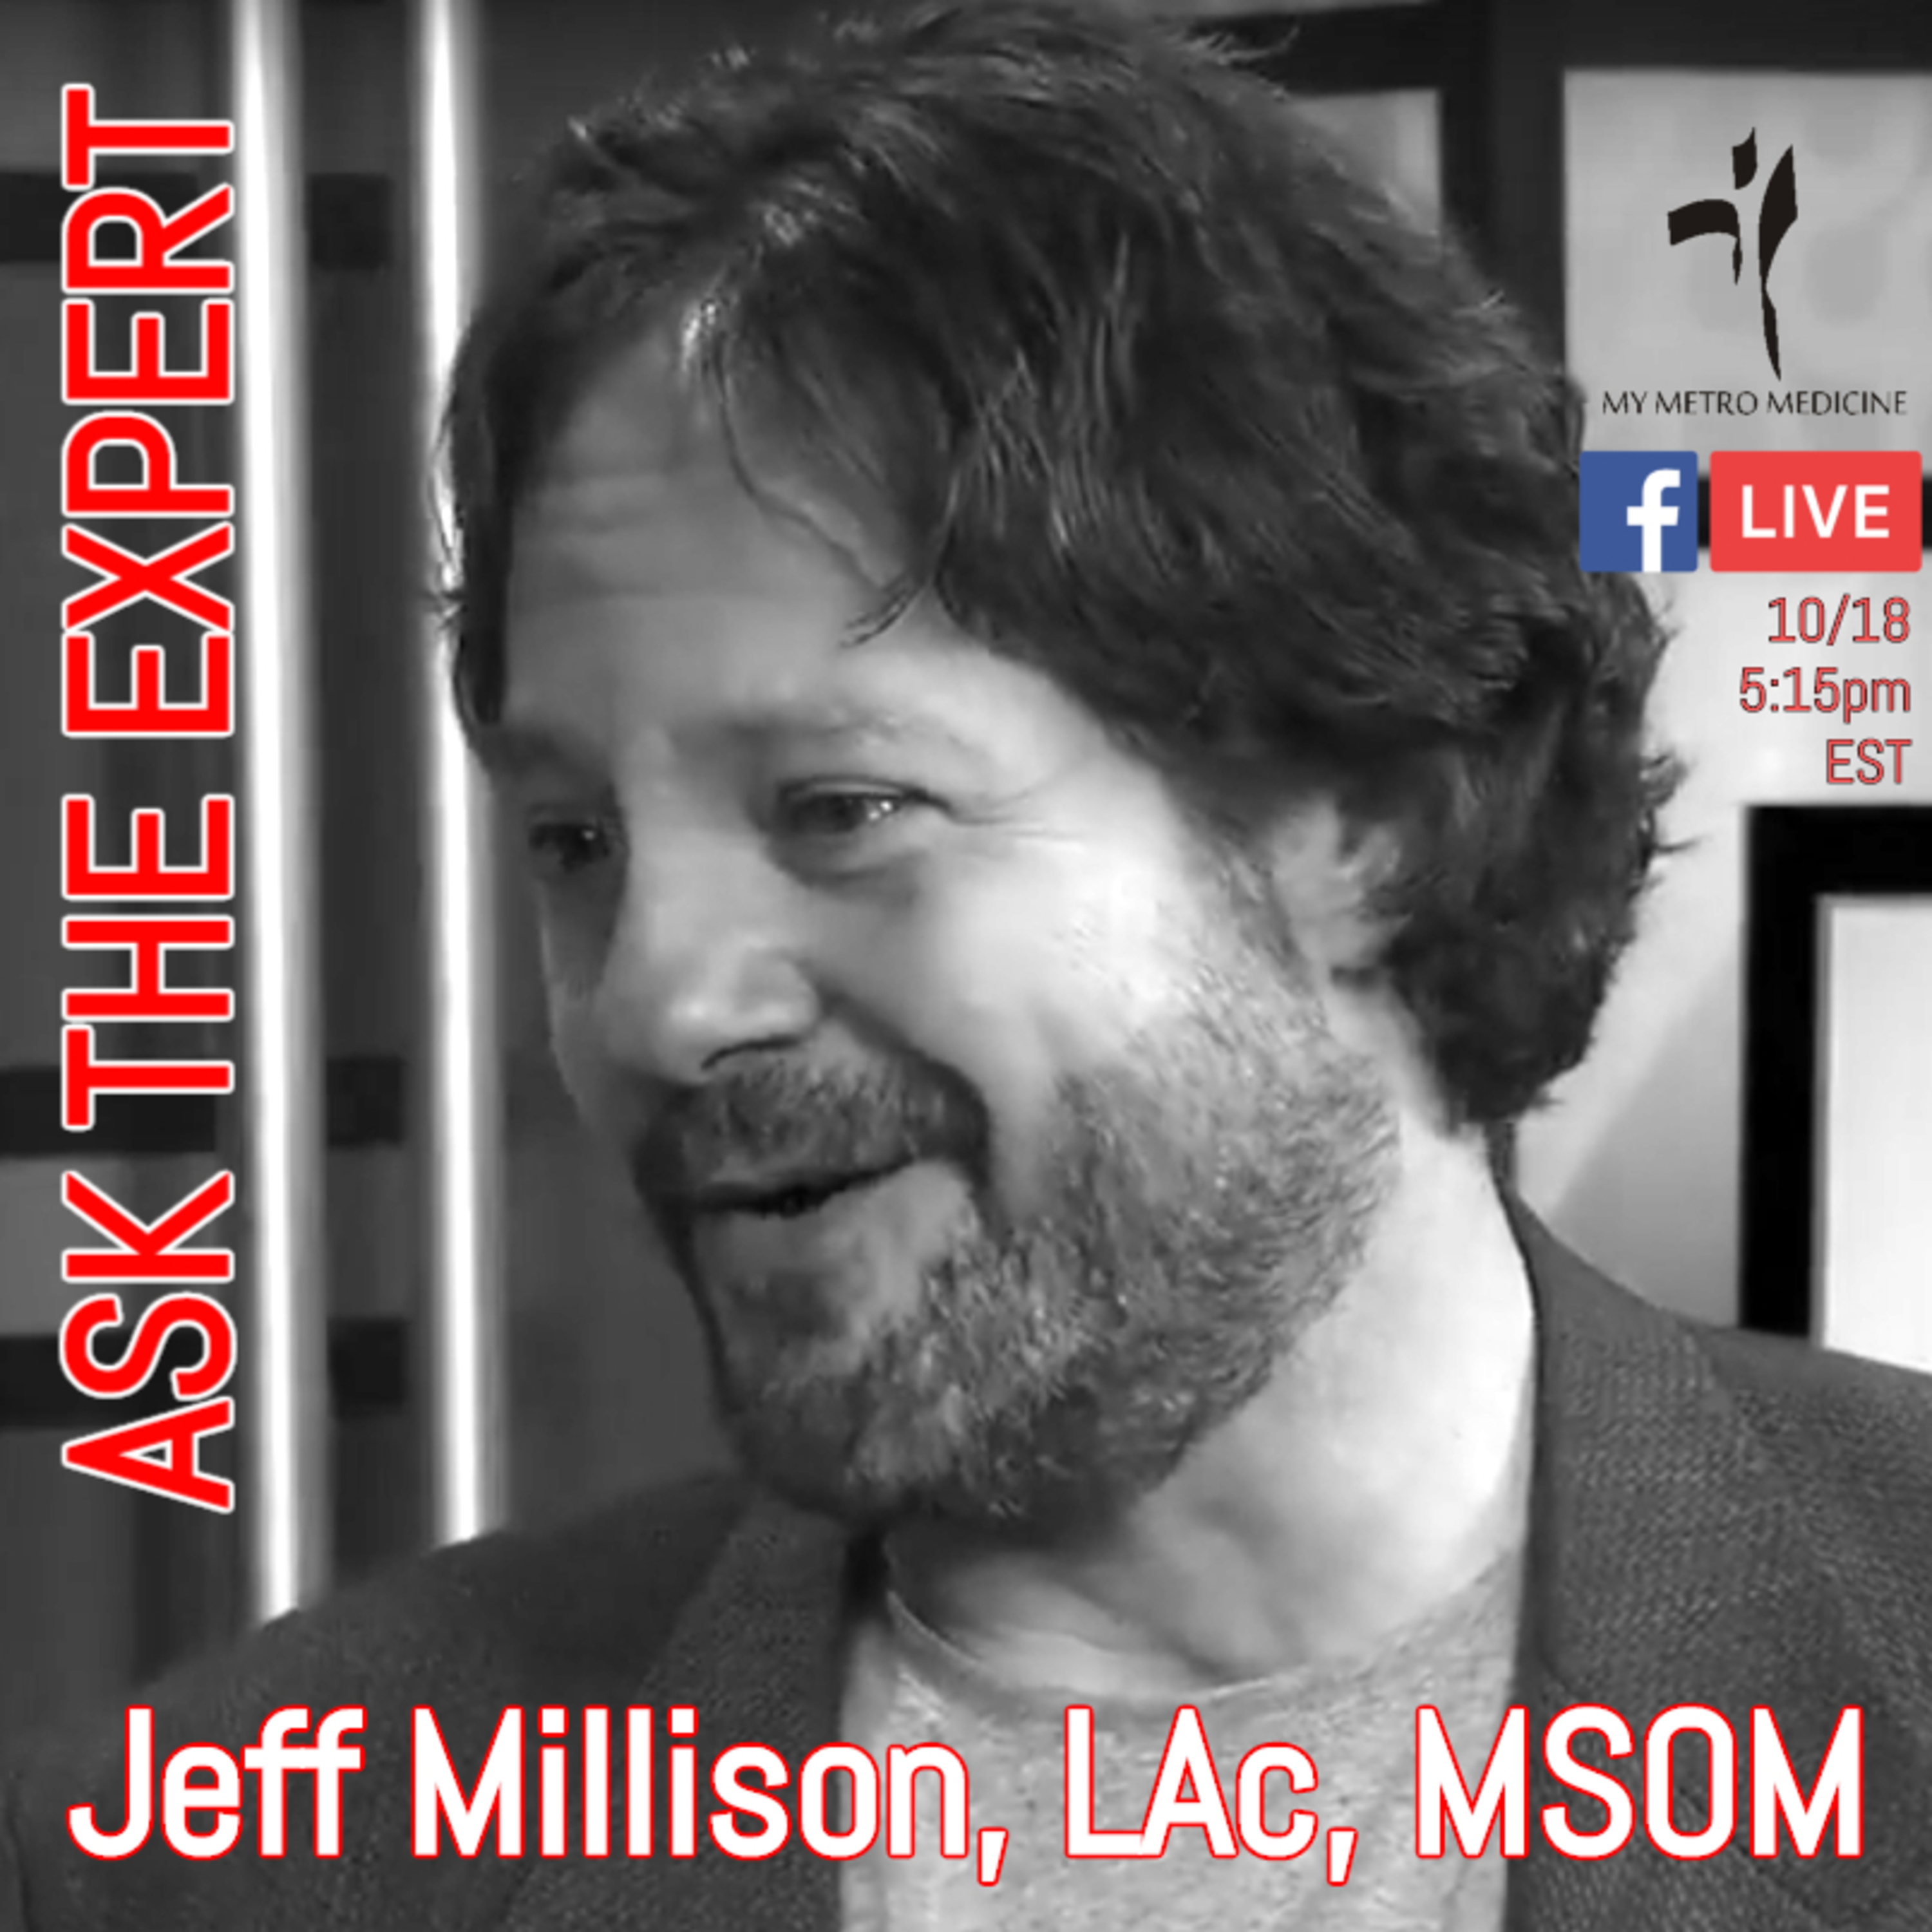 ASK THE EXPERT---Jeff Millison, LAc, MSOM (Academic Dean, VUIM)